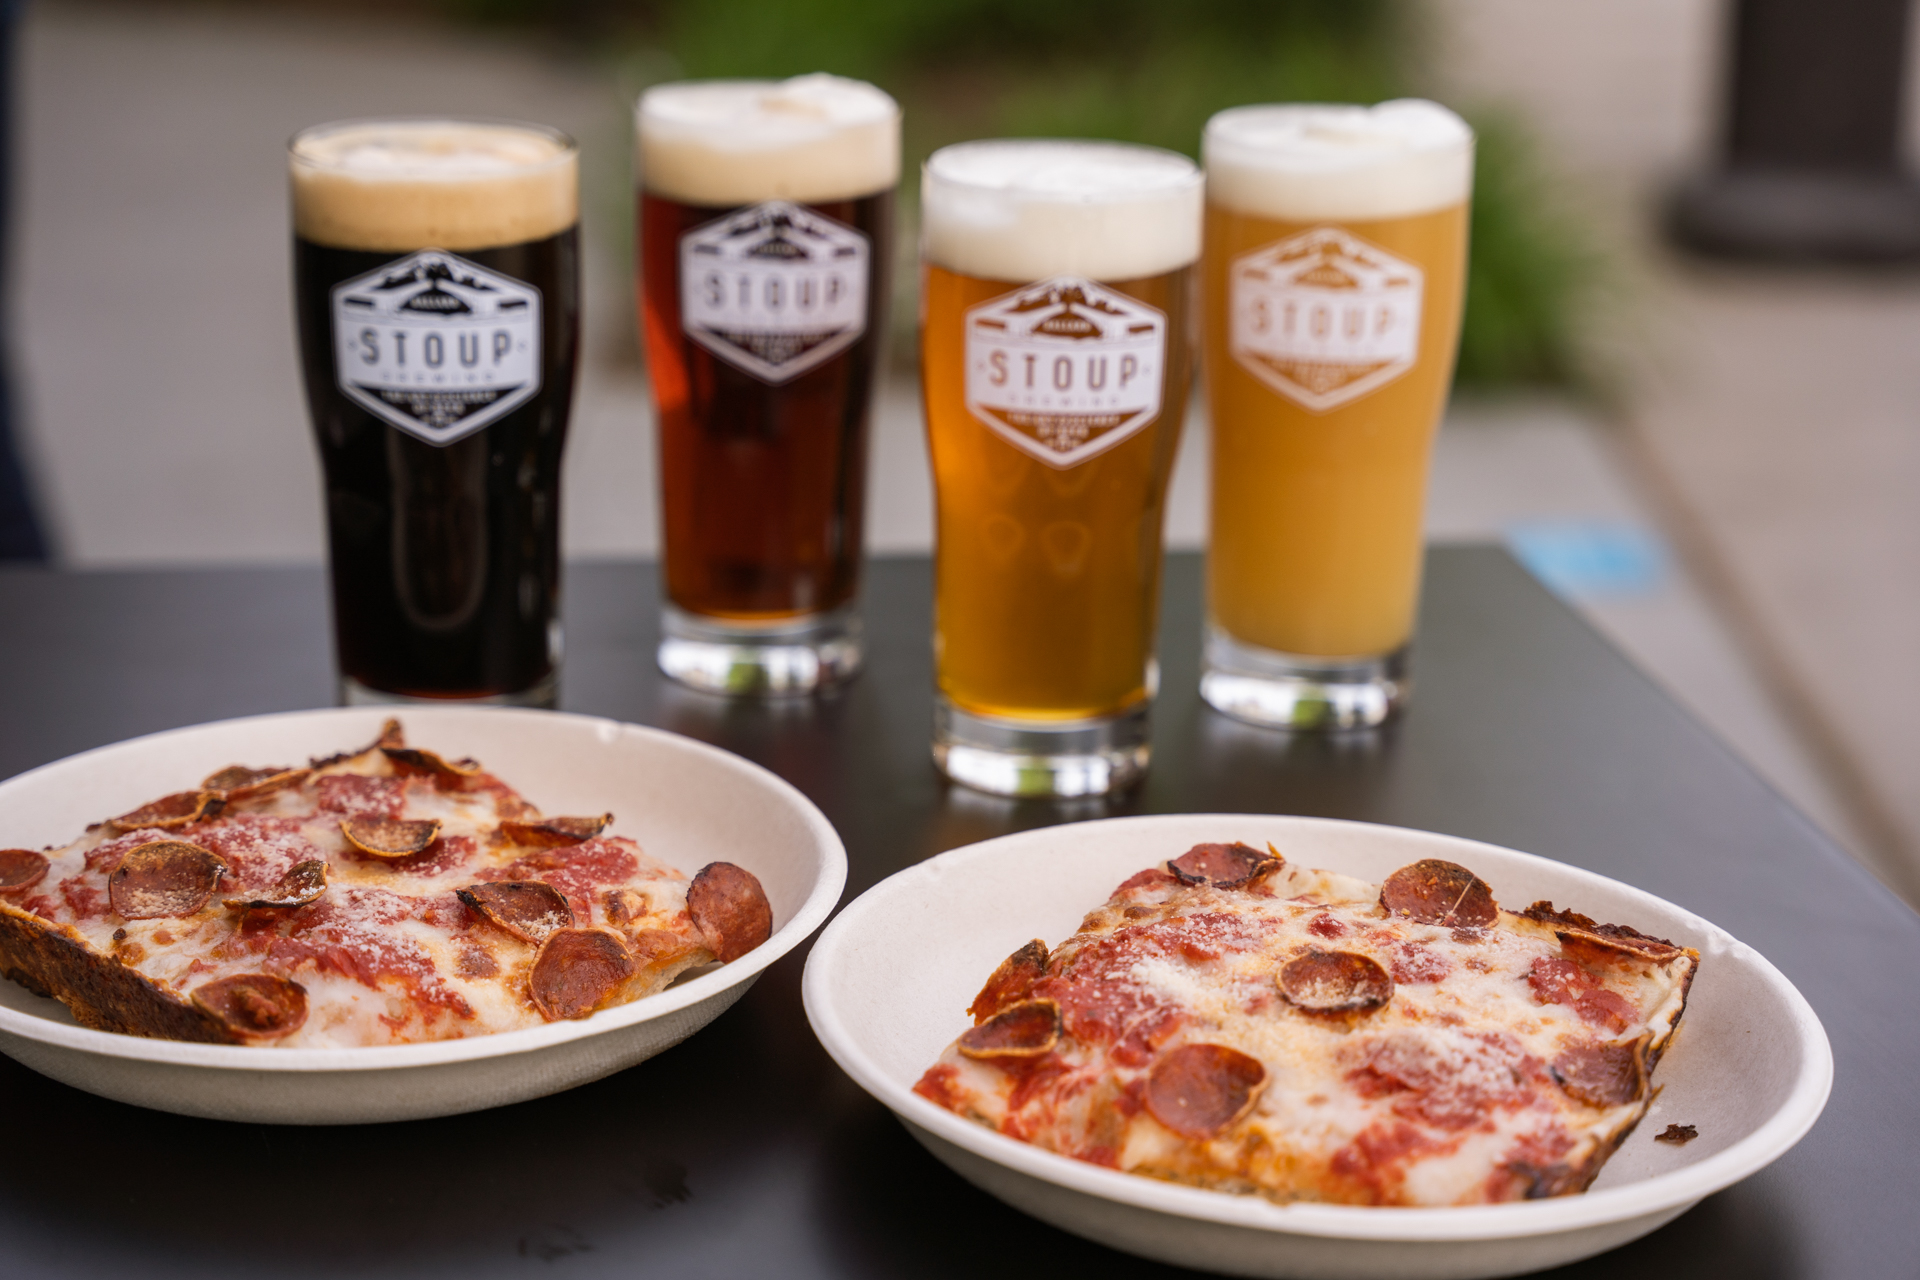 A view of four pint glasses full of beer next to two plates with square slices of pepperoni pizza